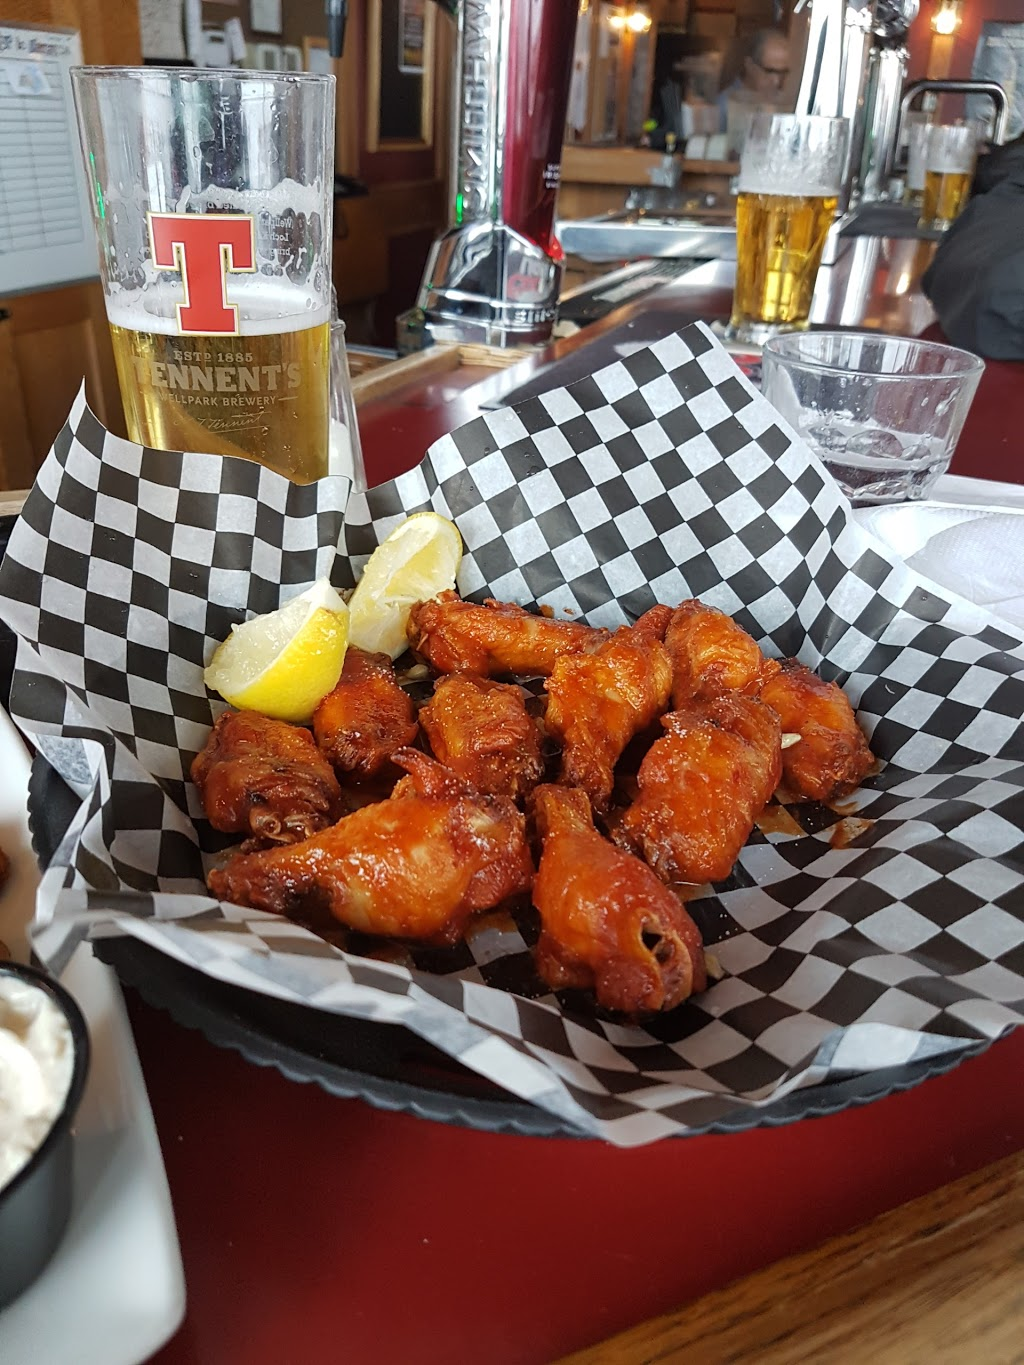 Wickies Pub And Restaurant | restaurant | 274 Burton Ave, Barrie, ON L4N 4C7, Canada | 7057250630 OR +1 705-725-0630